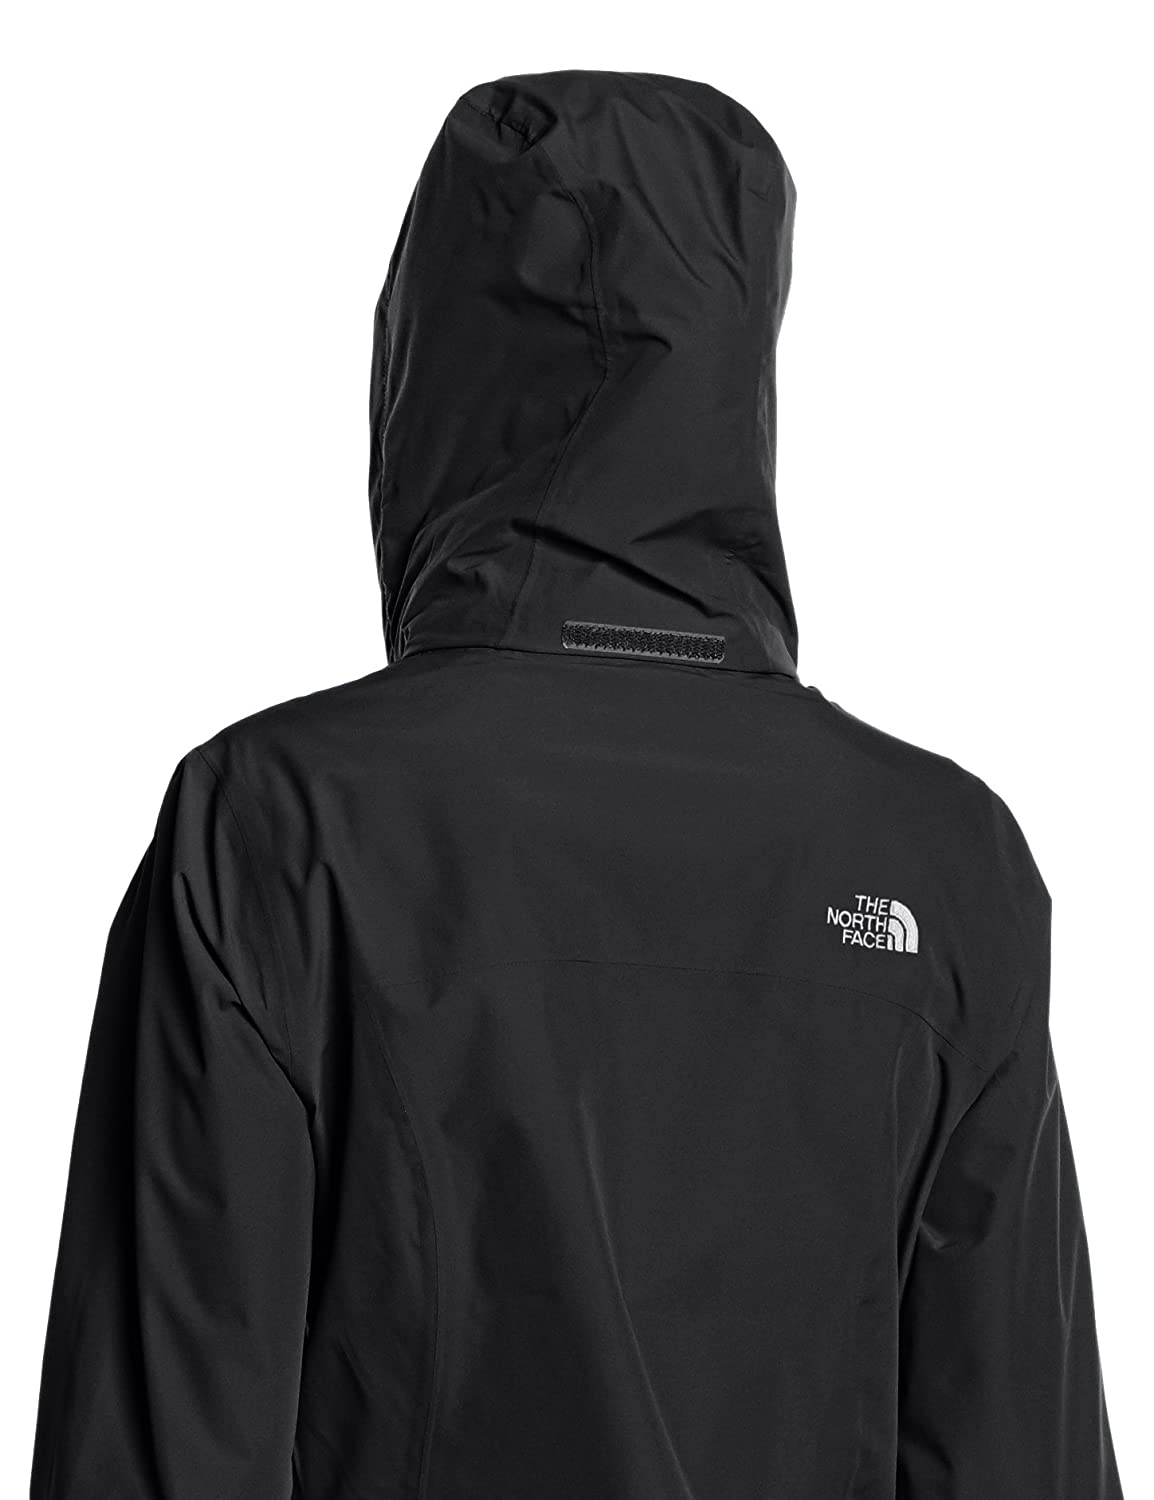 Amazon.com: The North Face Womens Sangro HyVentJacket ...